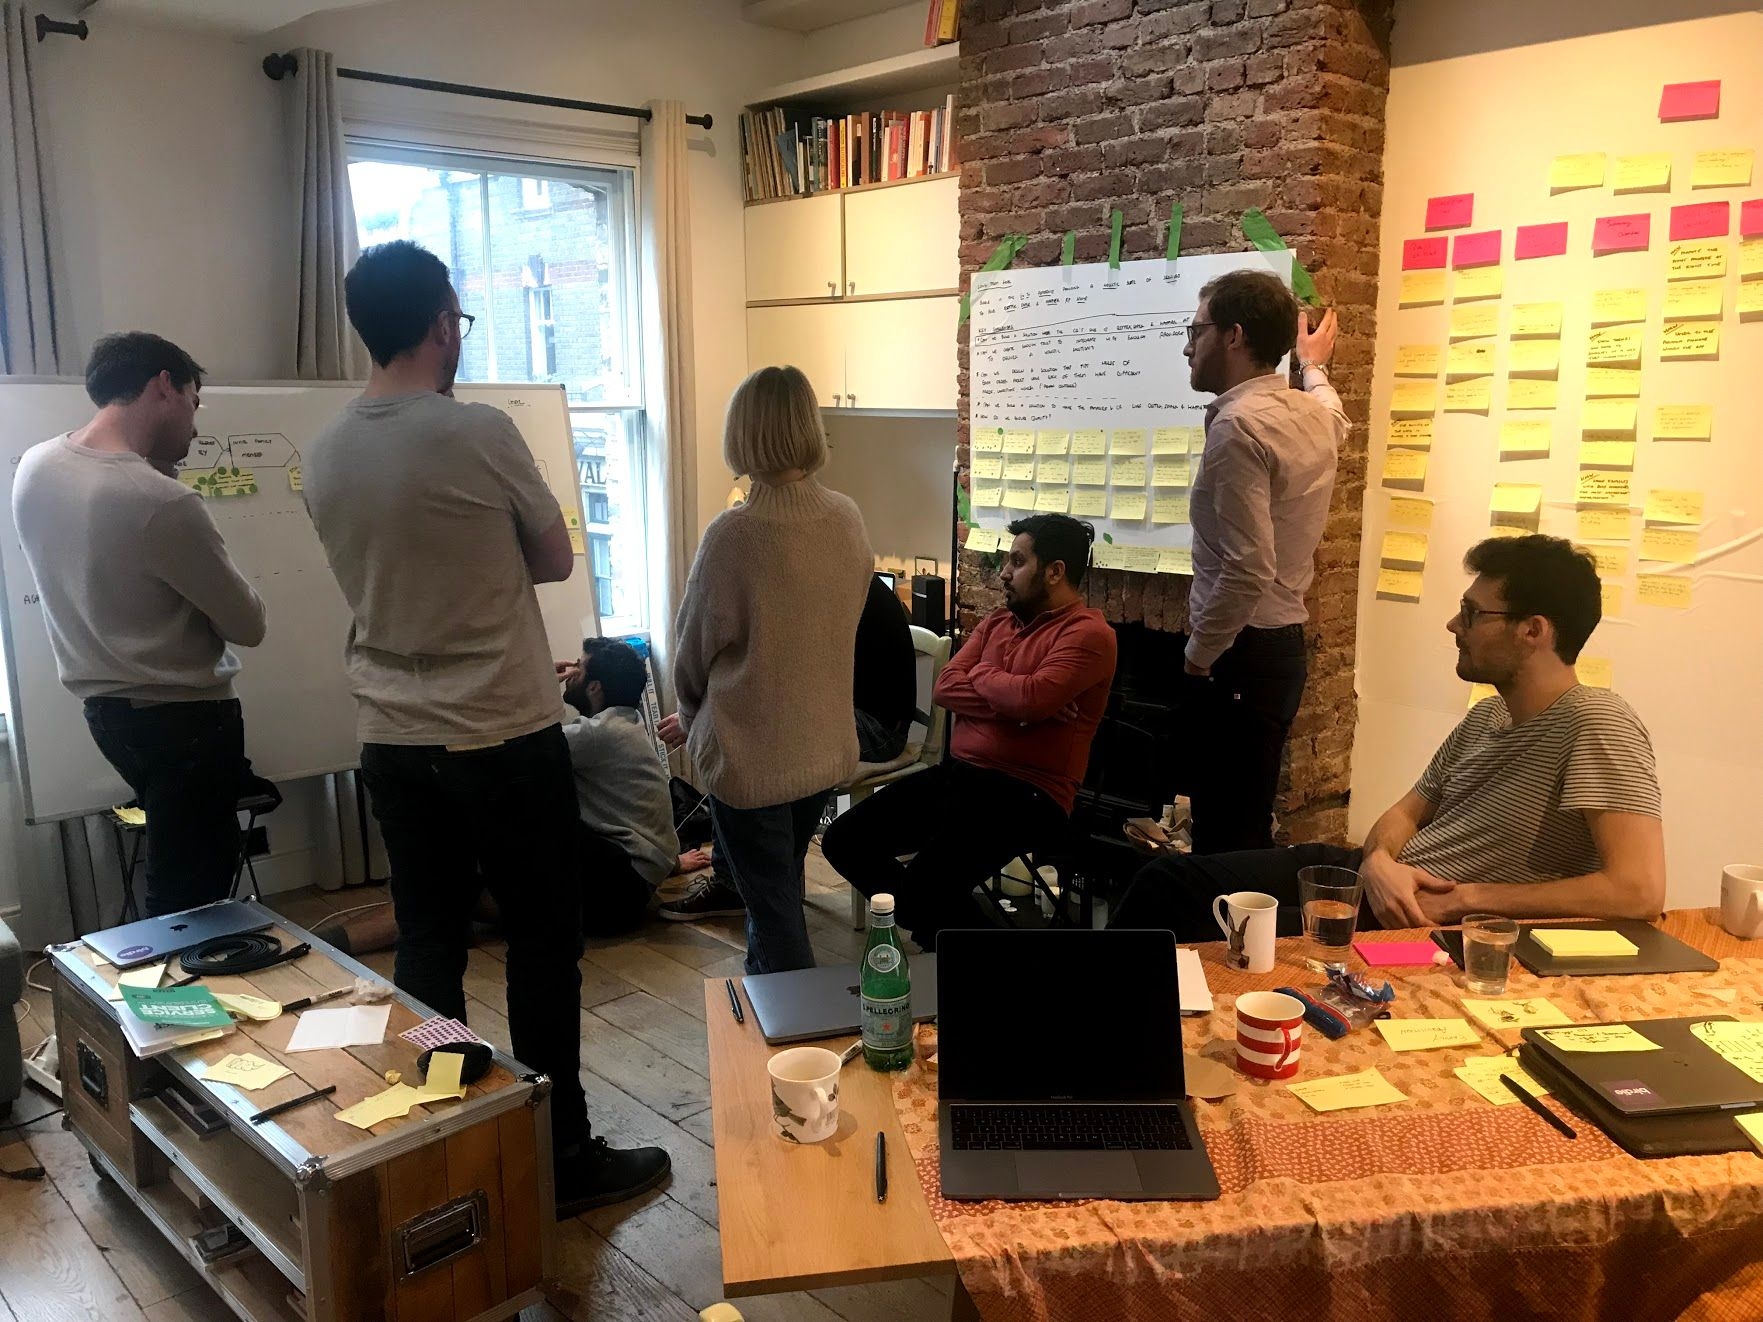 A group of people in a startup workshop